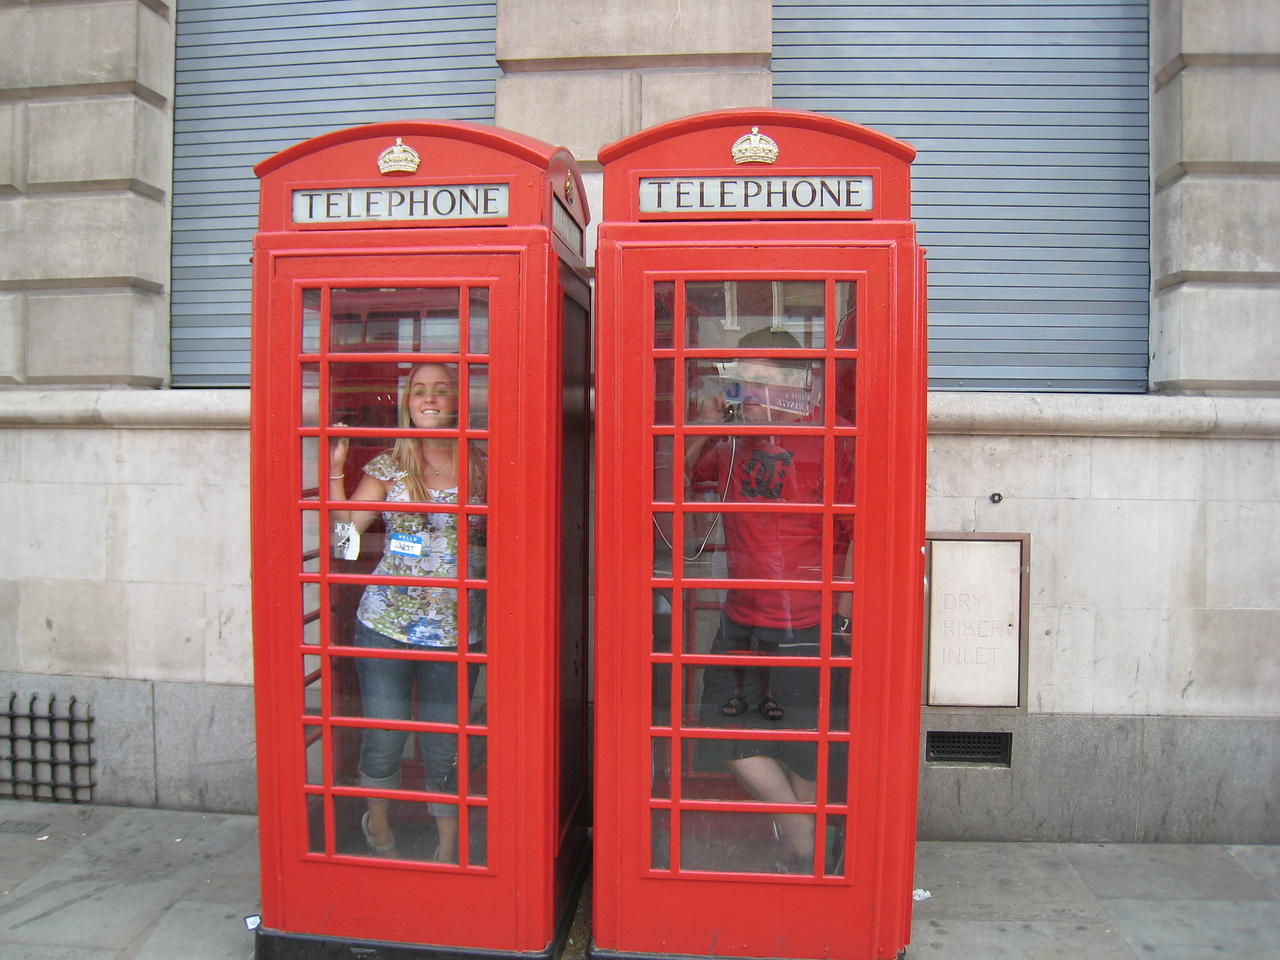 I was calling Courtney. Turns out she was in the phone booth next to me.